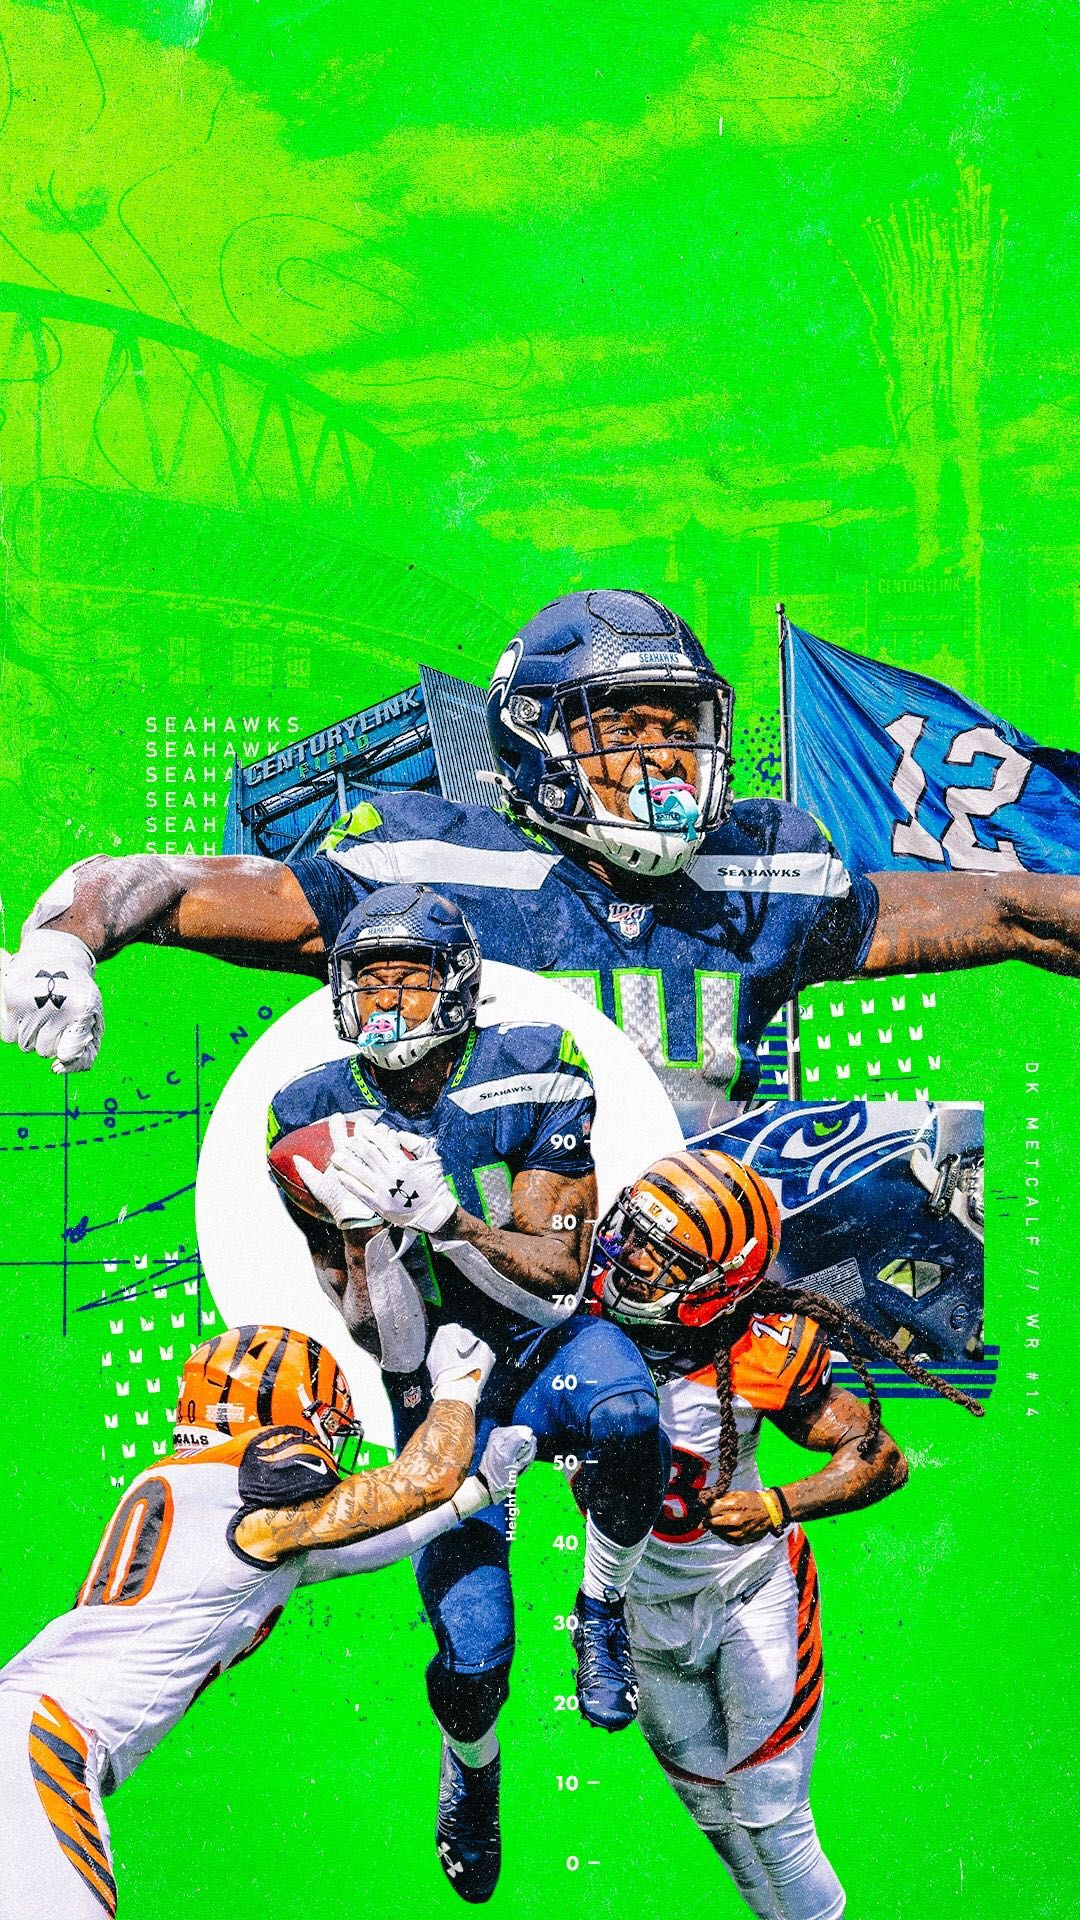 Pin By Carter Stanton On Design Seattle Seahawks Football Nfl